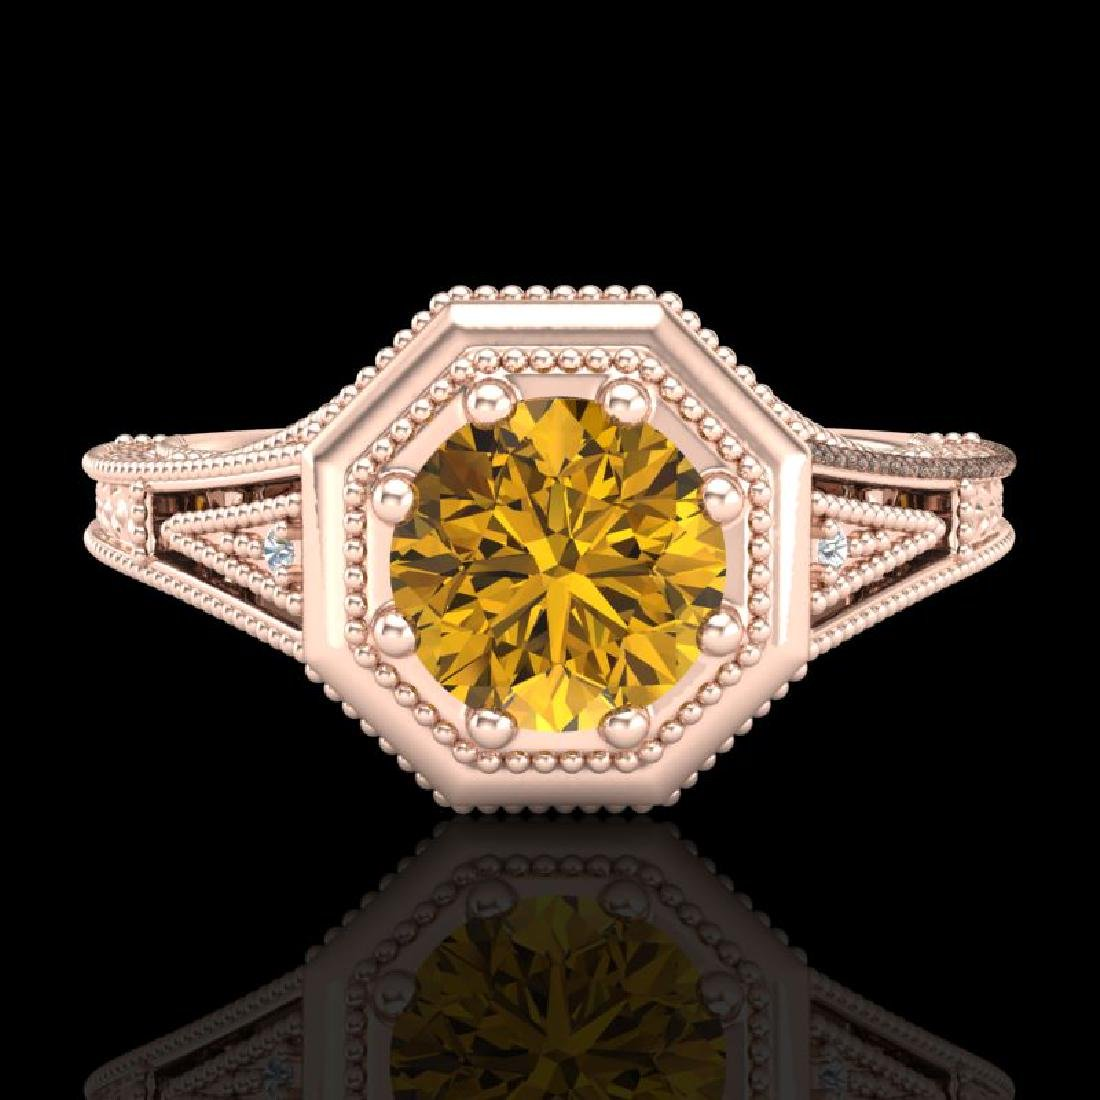 0.84 CTW Intense Fancy Yellow Diamond Engagement Art - 2